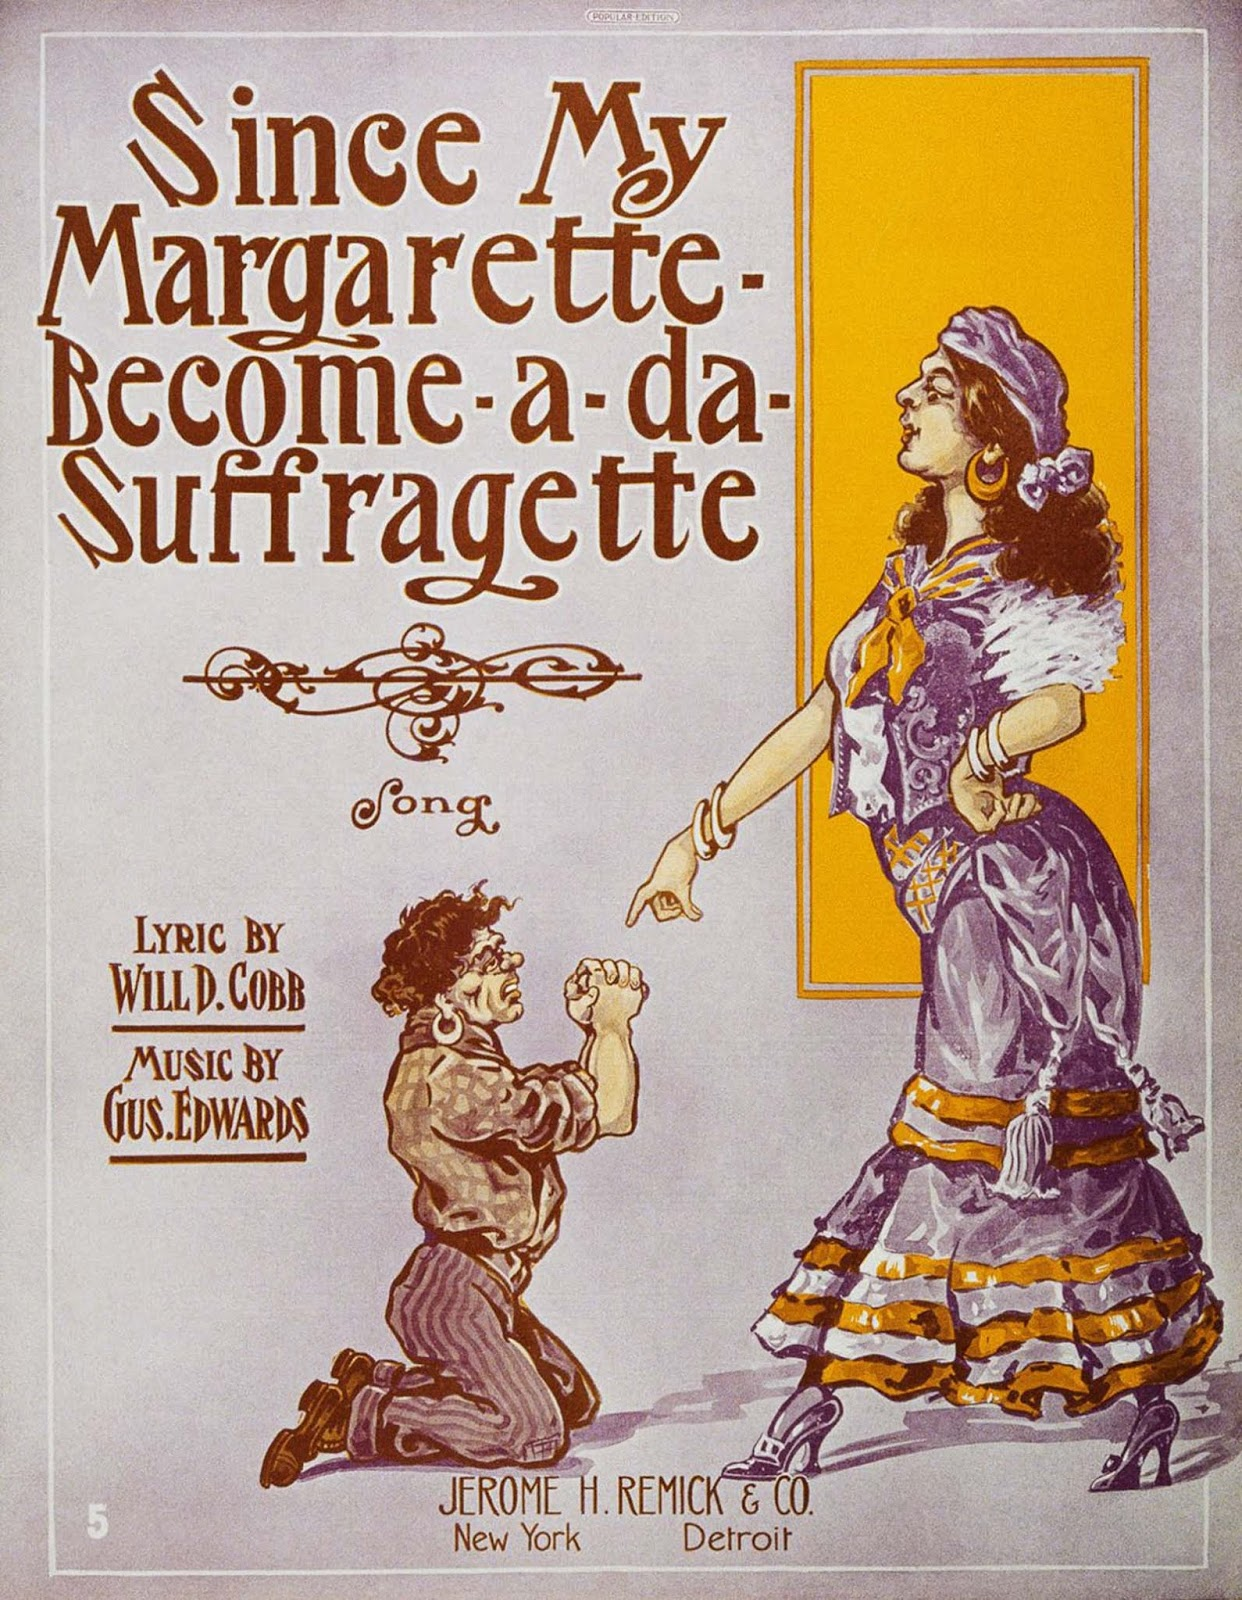 A satirical suffrage-themed songbook. 1910.